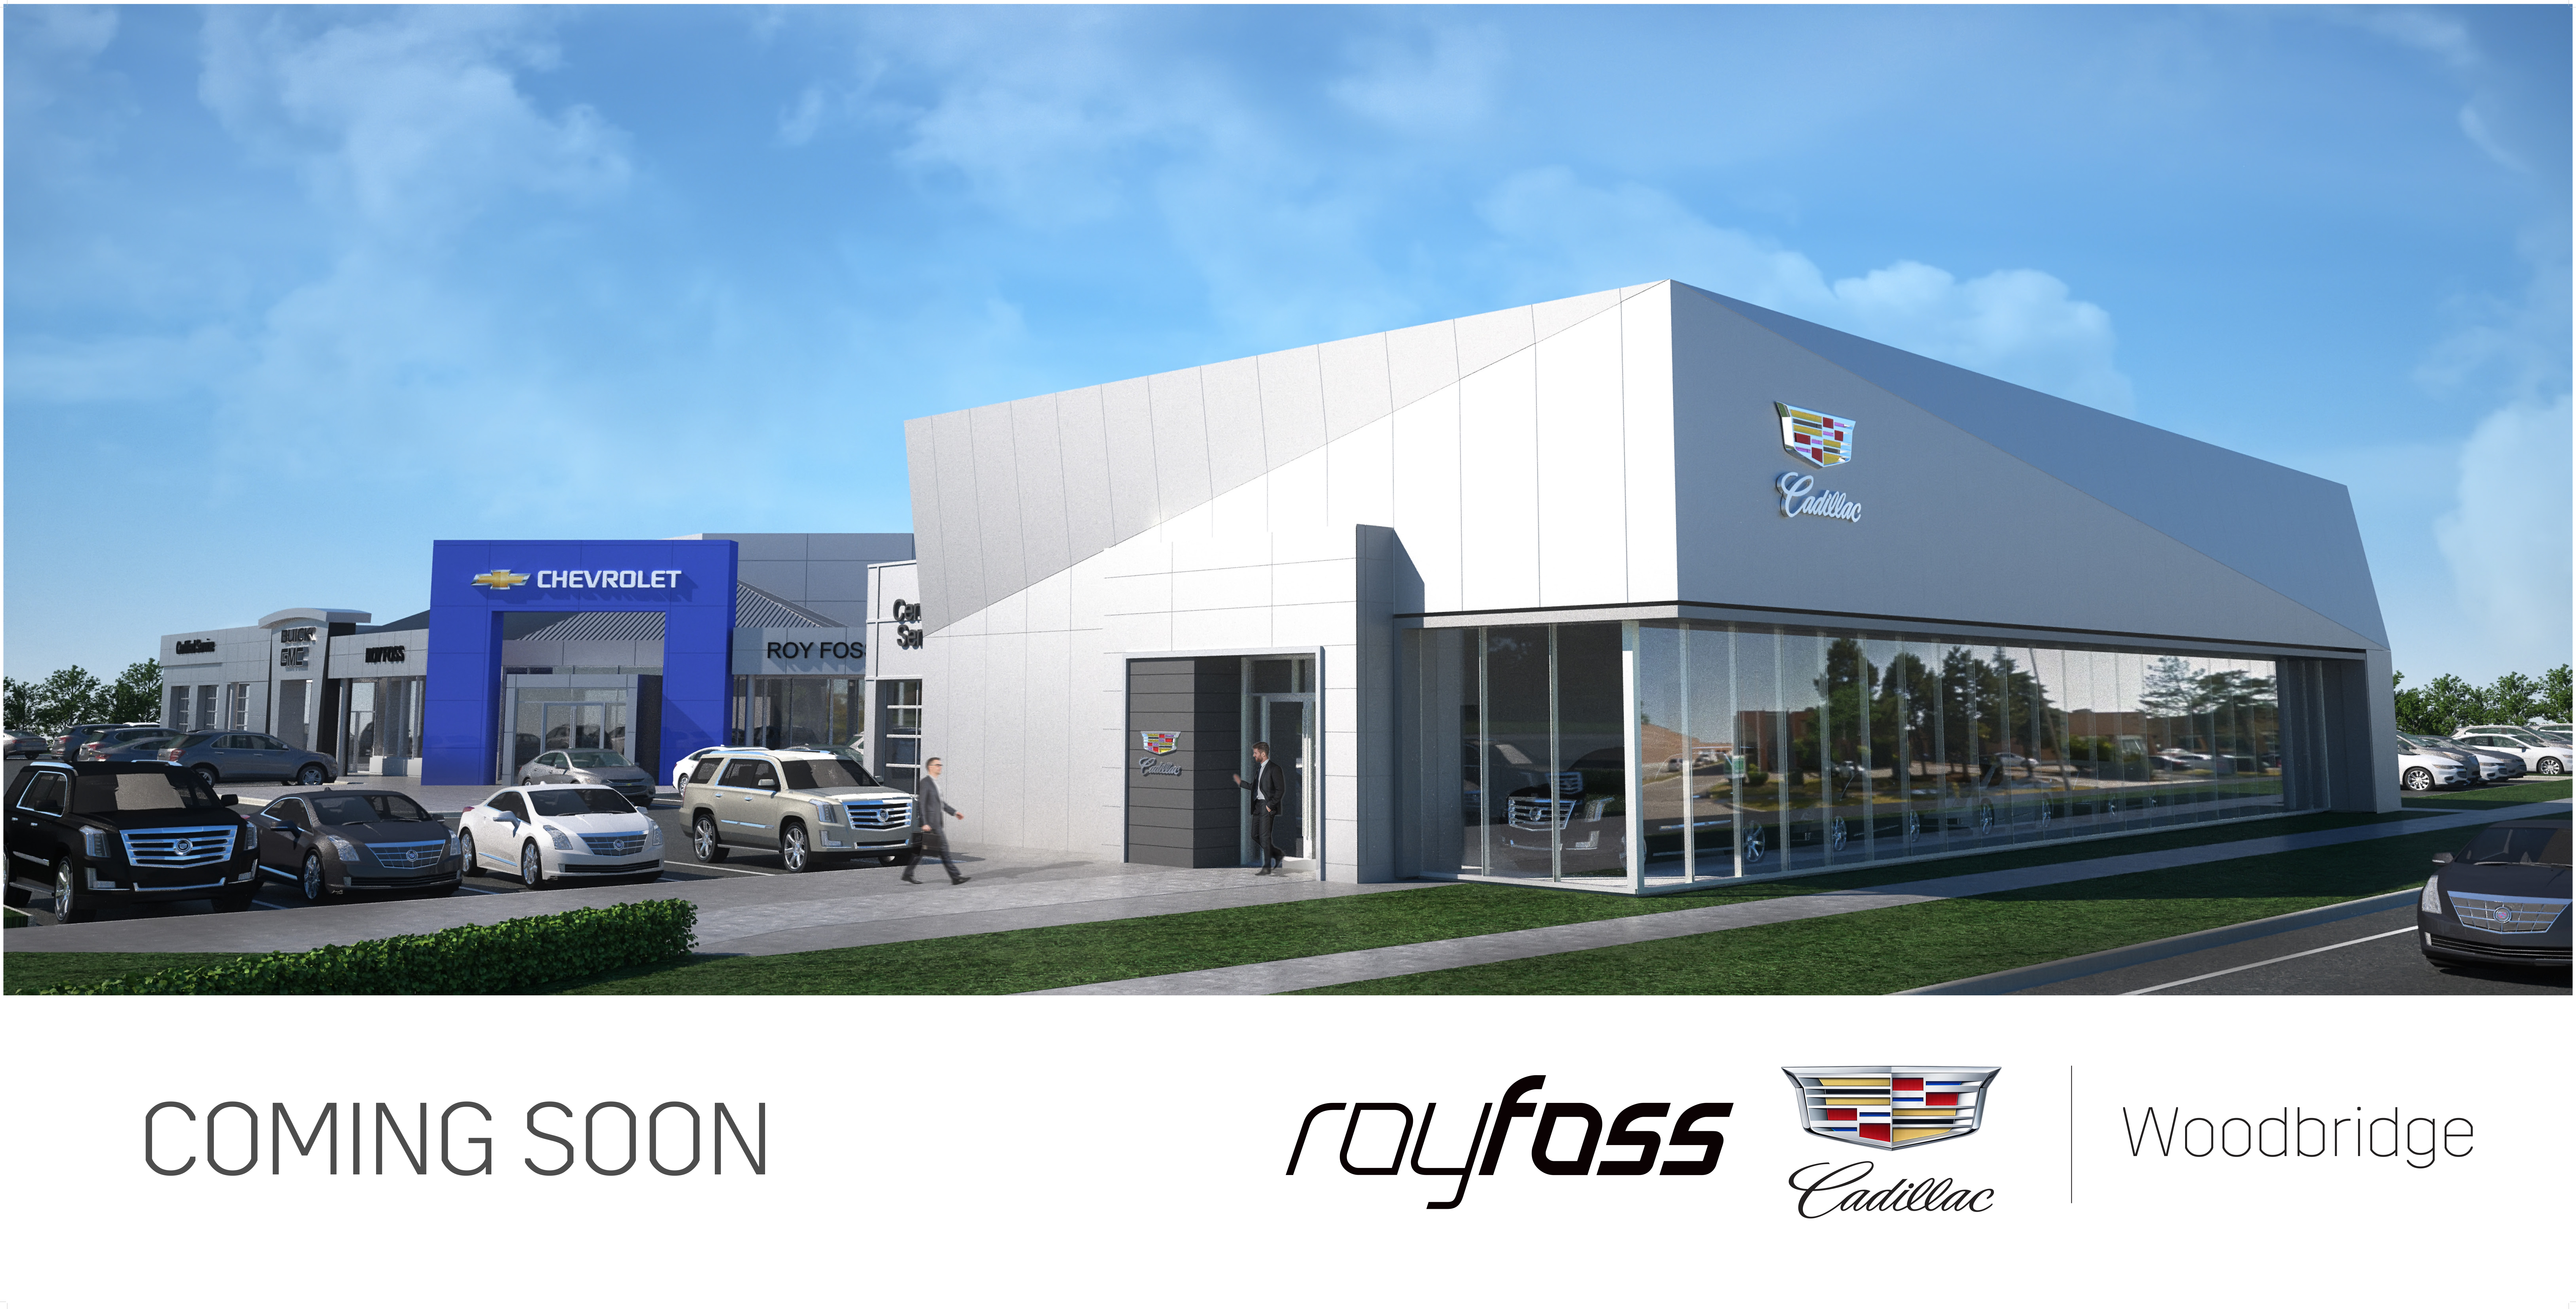 Ontario Gets First-Ever Cadillac Exclusive Dealership ...